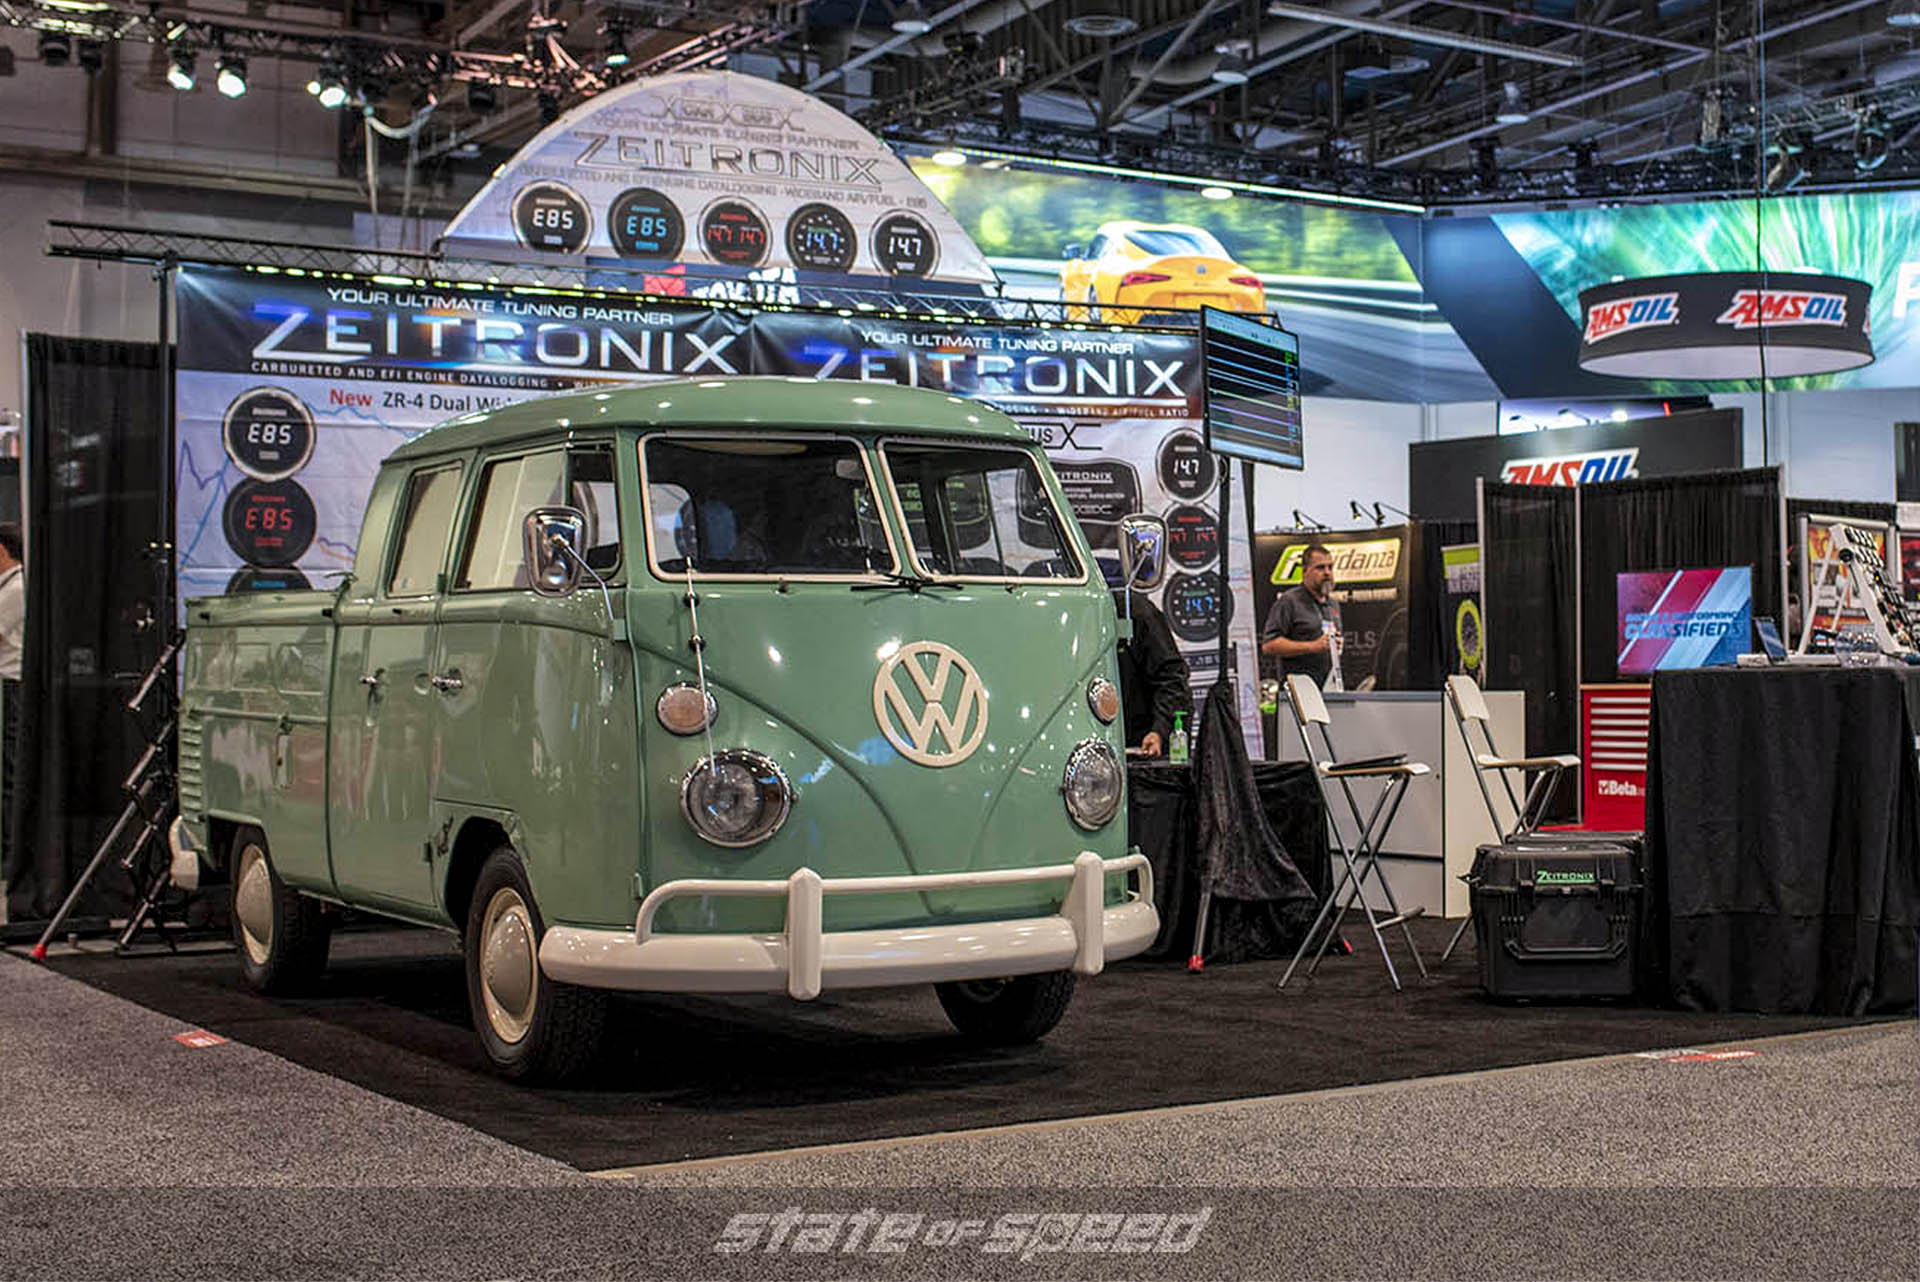 Volkswagen Transporter pickup at the Seitronix booth at SEMA